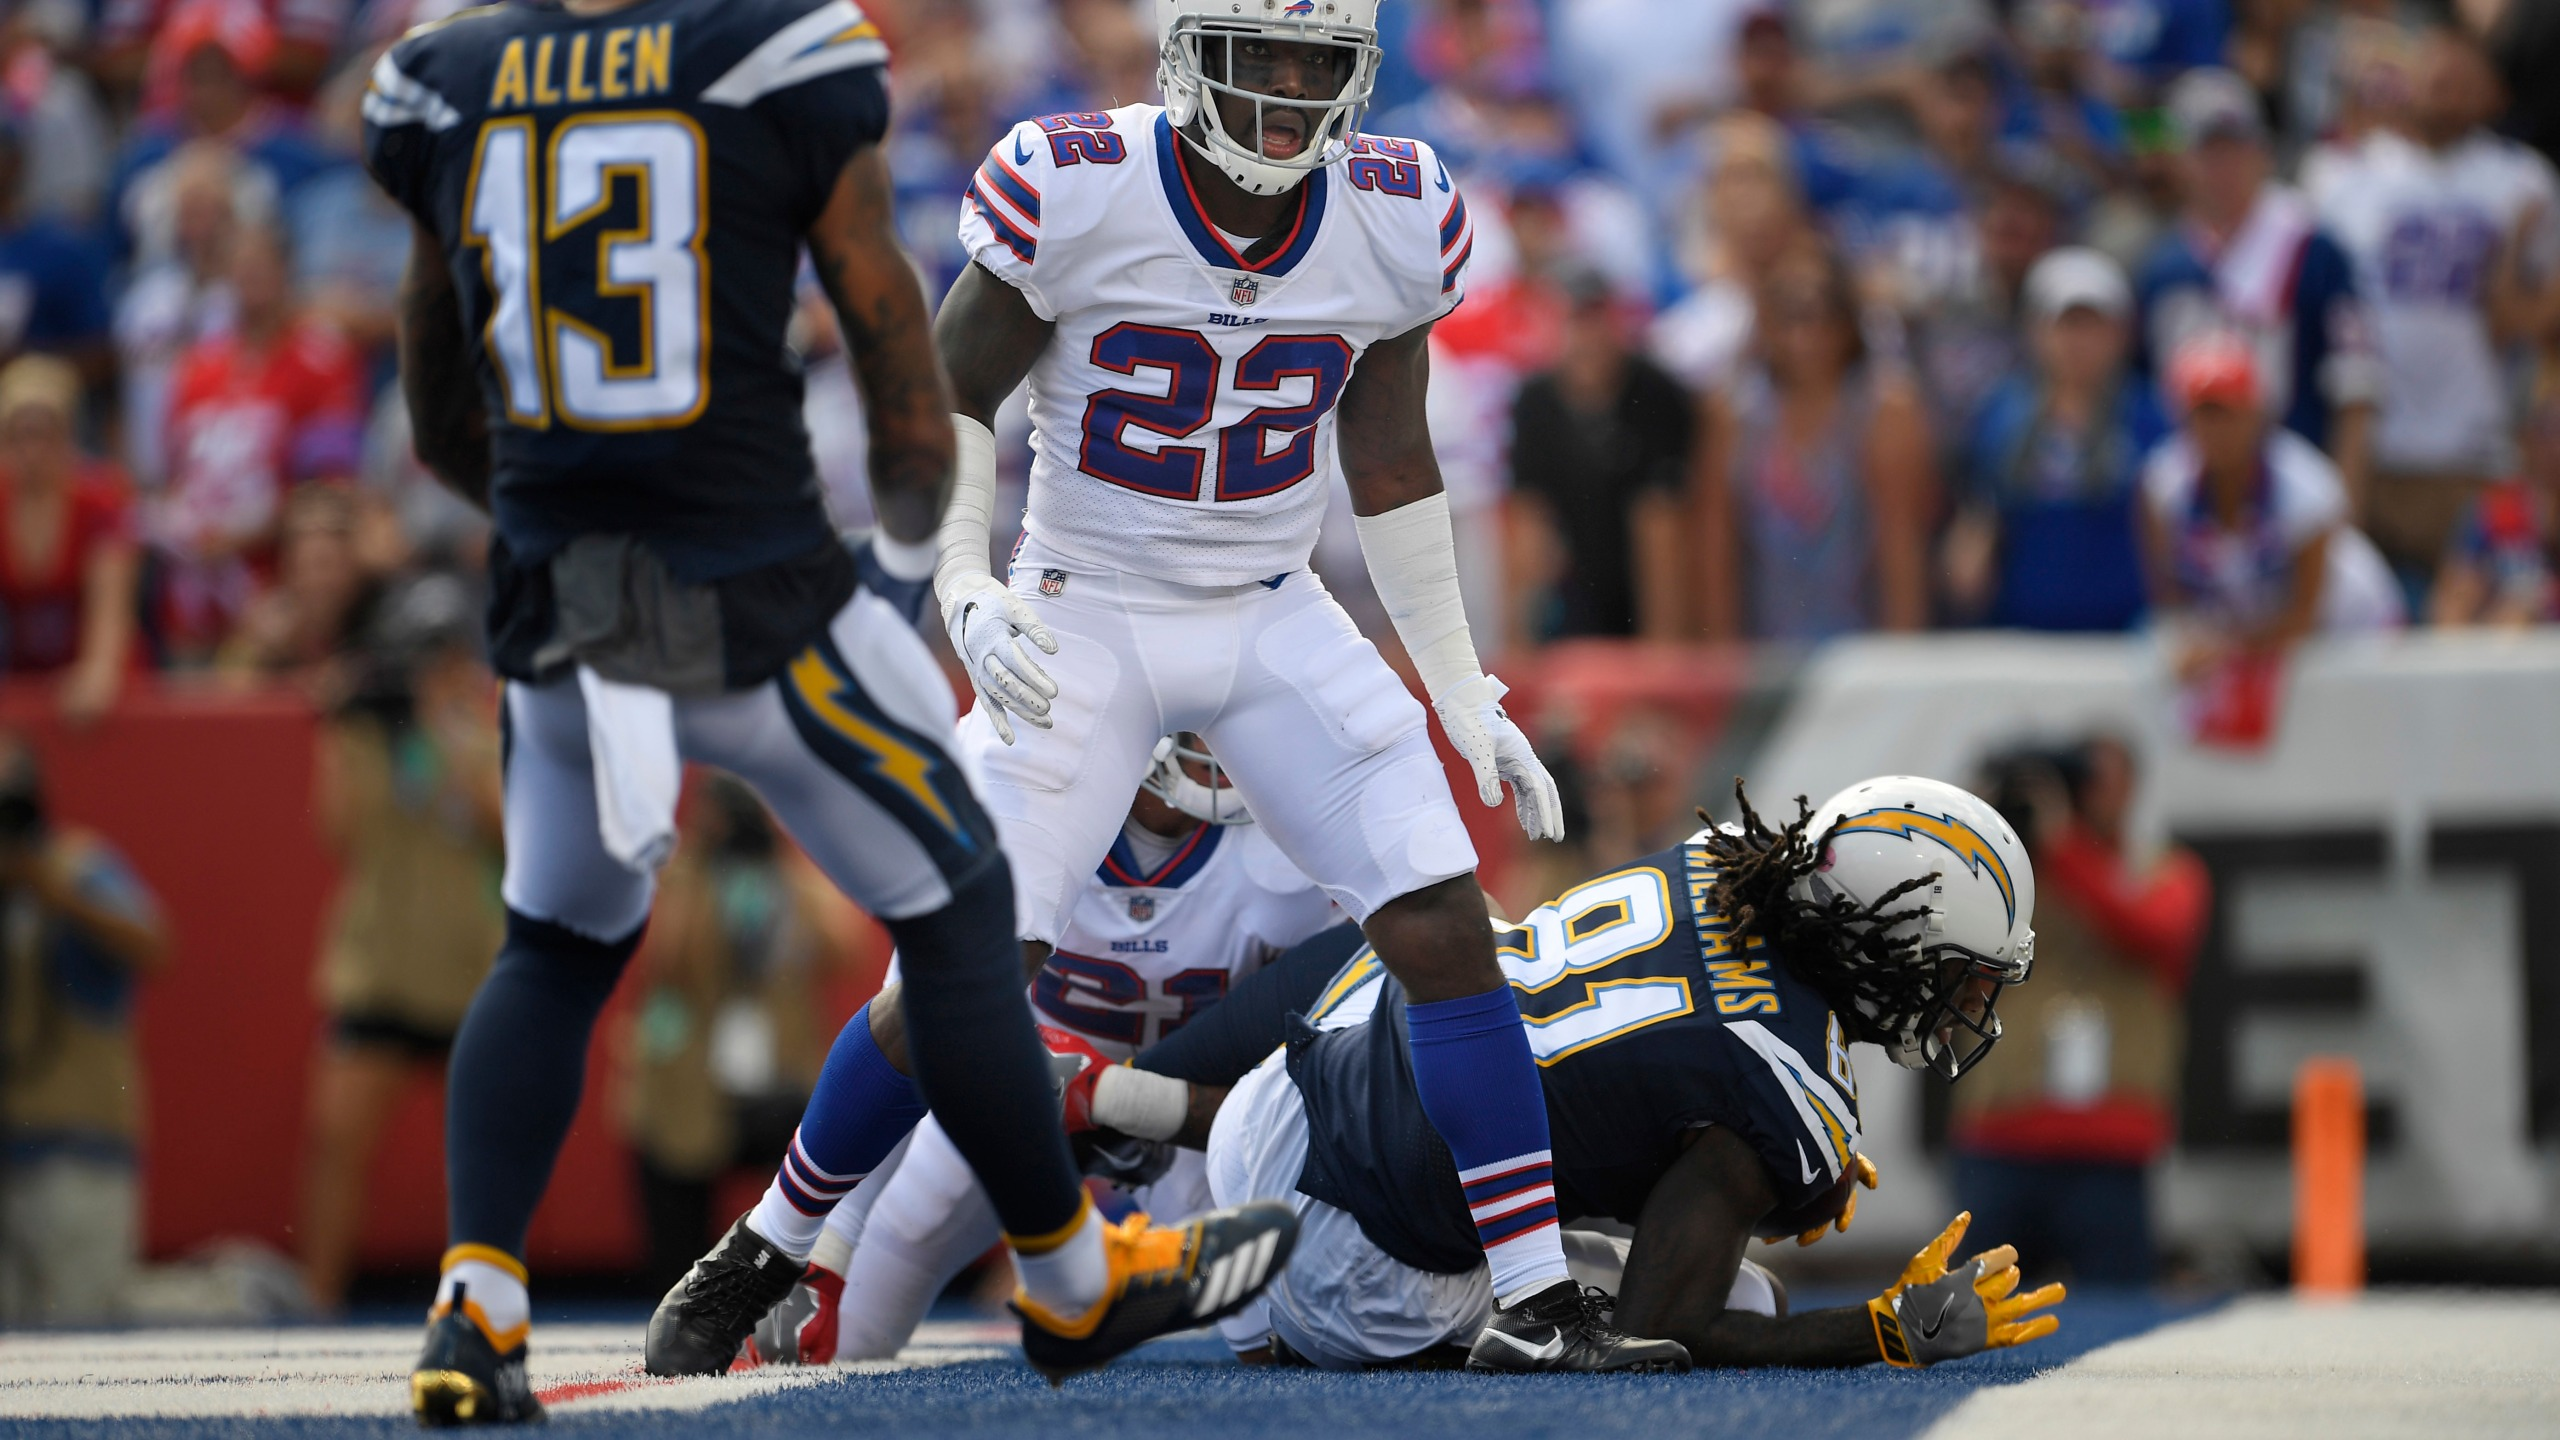 Charger Bills Football_1537133163794